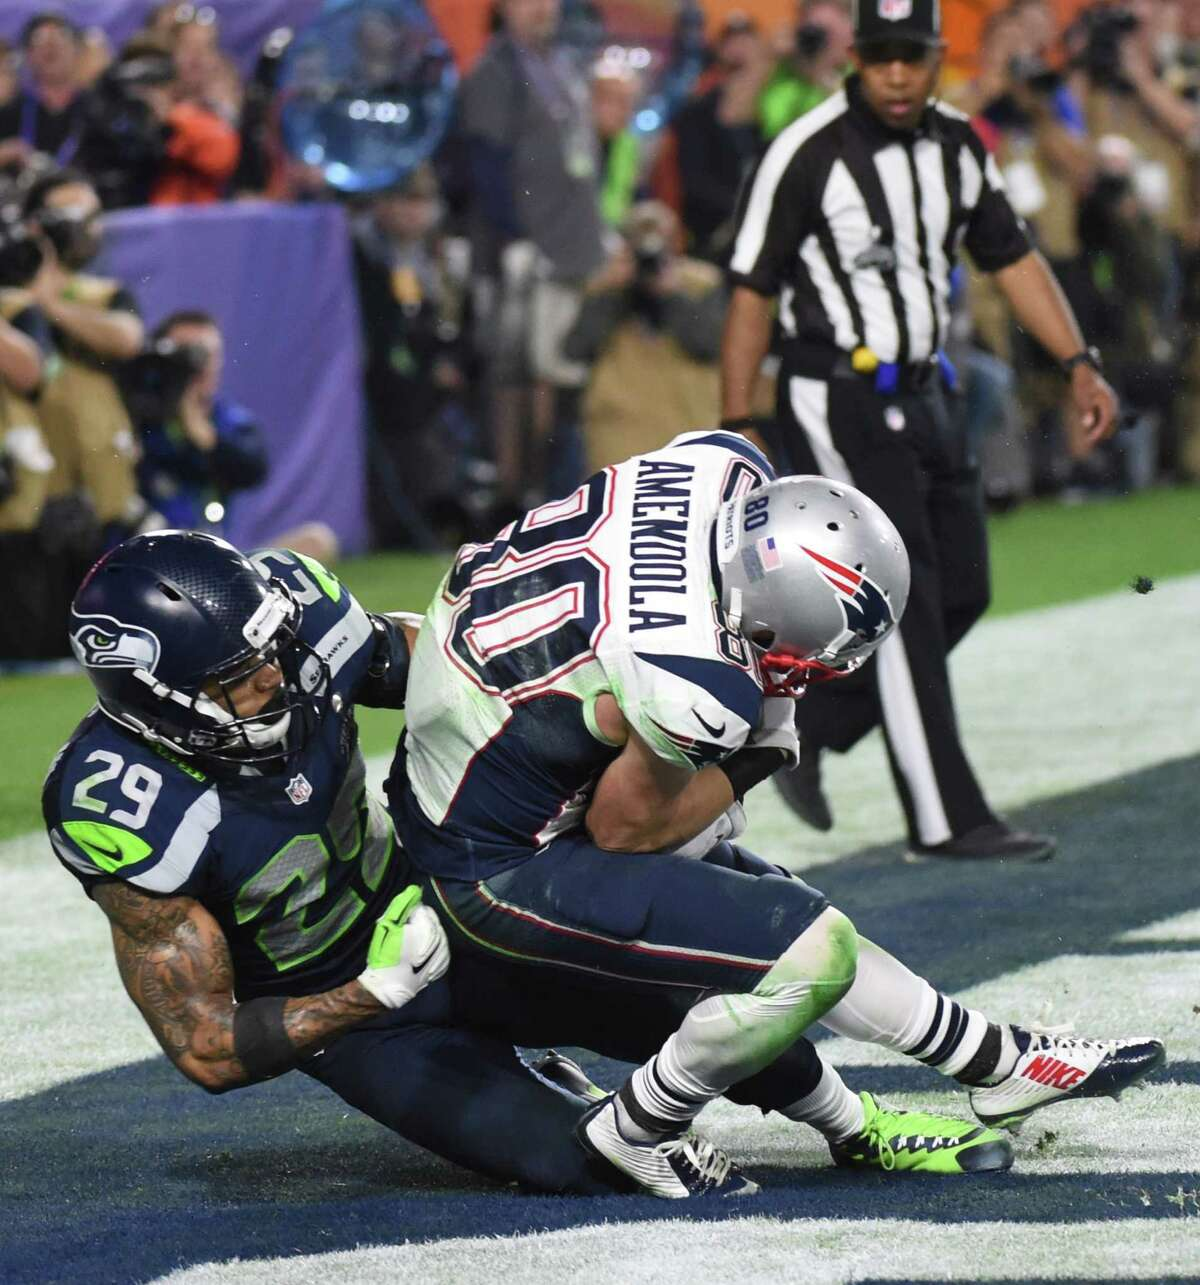 Danny Amendola (R) of the New England Patriots scores a touchdown against Earl Thomas (L) of the Seattle Seahawksin the fourth quarter during Super Bowl XLIX February 1, 2015 at University of Phoenix Stadium in Glendale, Arizona. The New England Patriots defeated the Seattle Seahawks 28-24. AFP PHOTO / TIMOTHY A. CLARYTIMOTHY A. CLARY/AFP/Getty Images ORG XMIT: 34733749